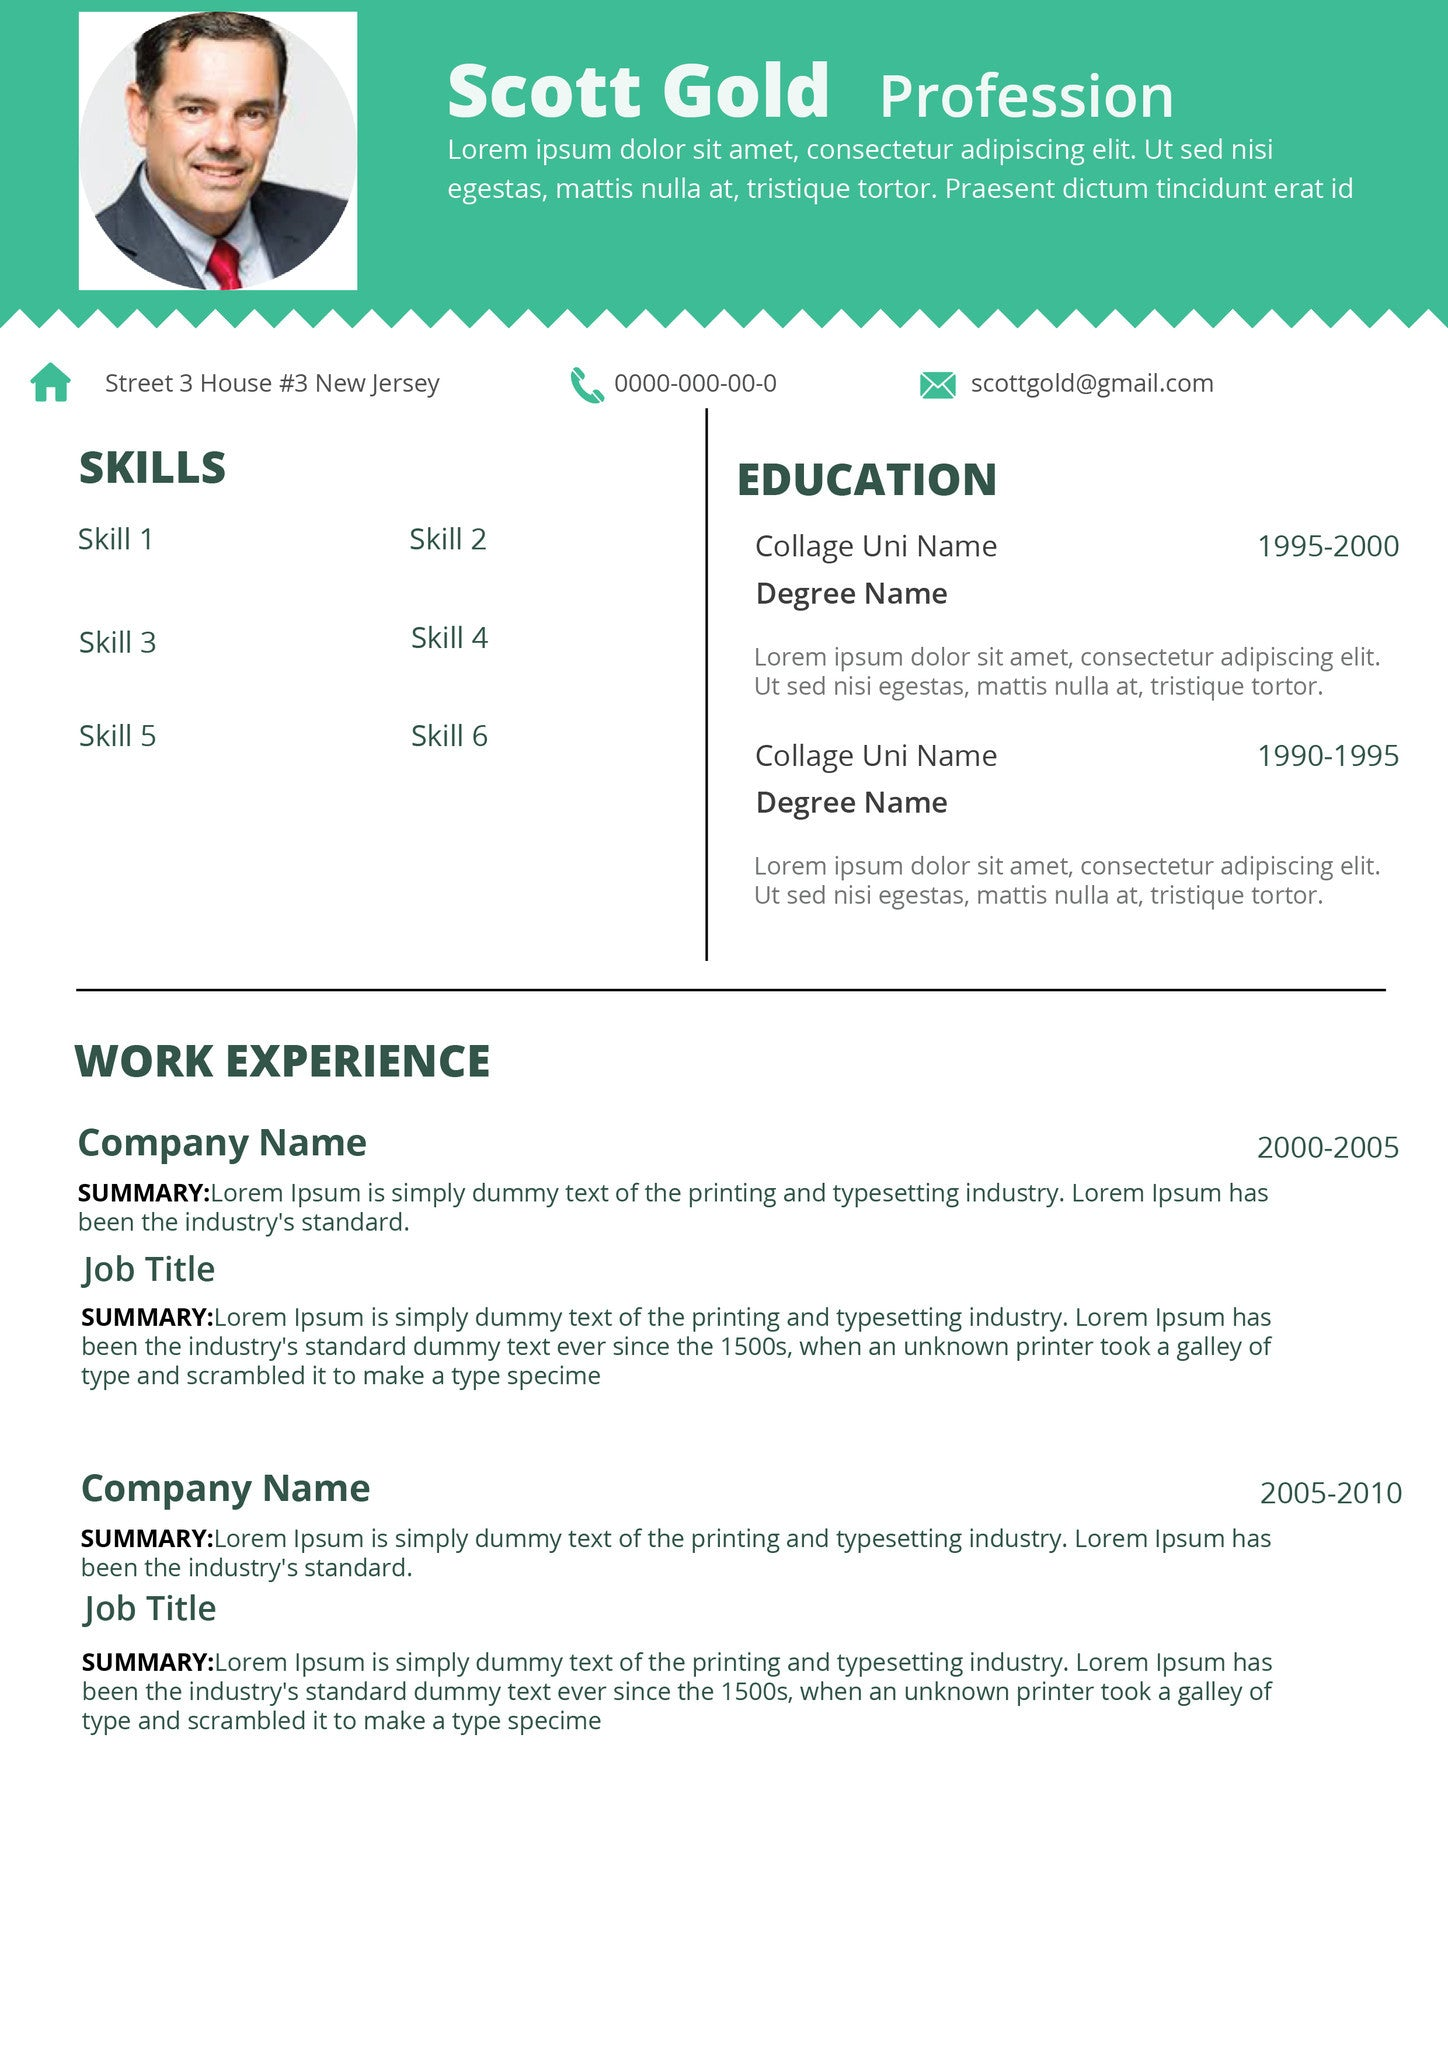 Resume 017 Resumes Experts